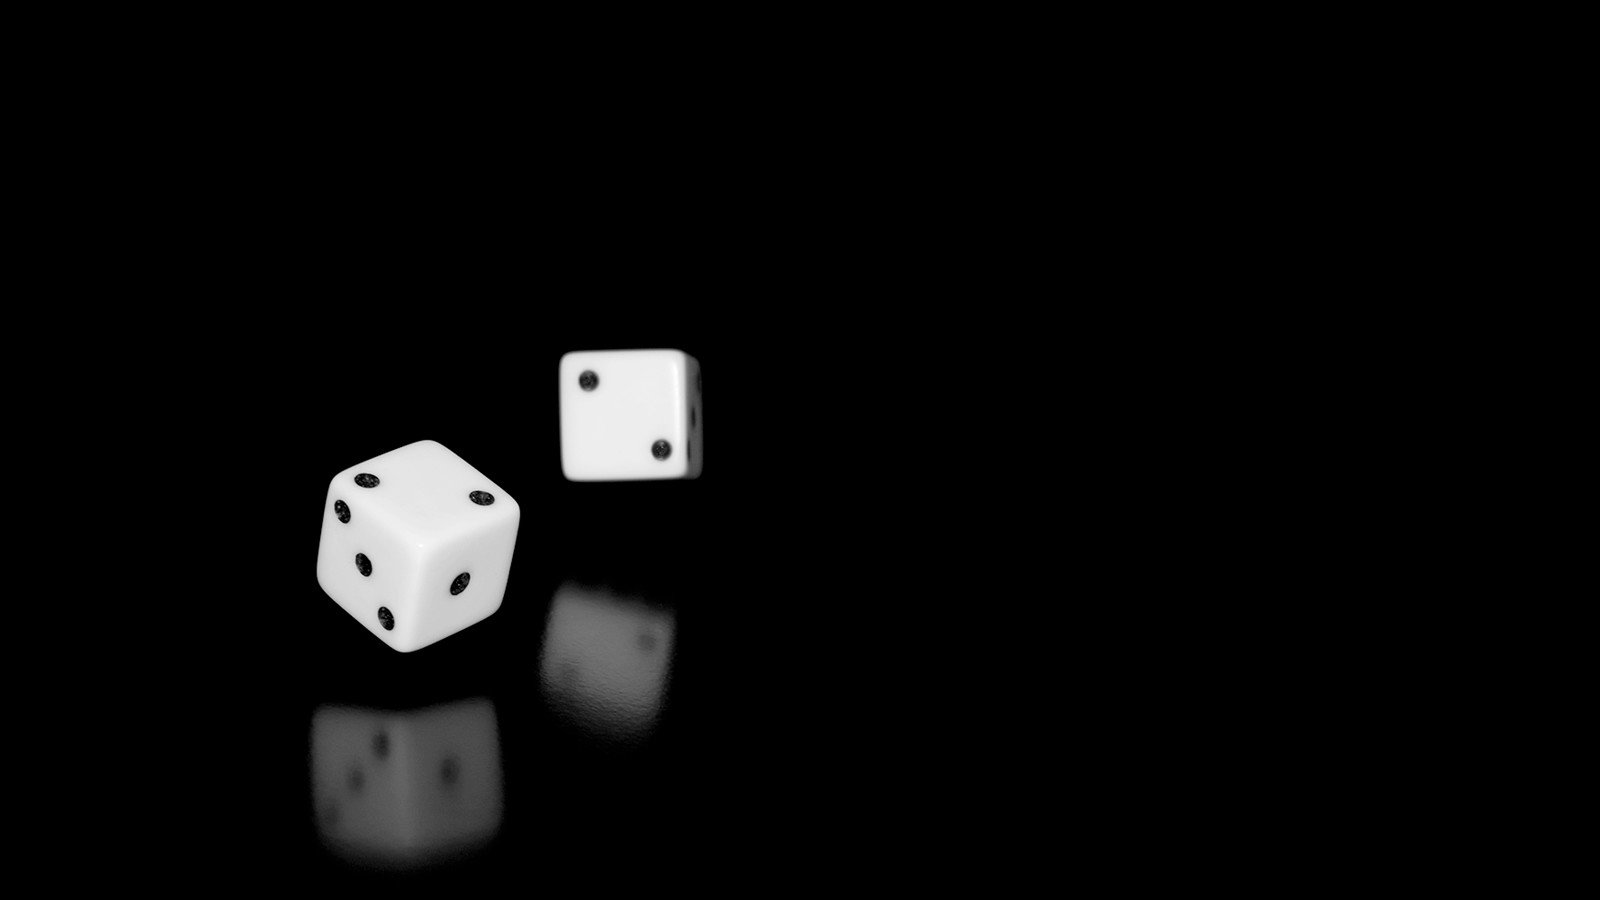 dice photography